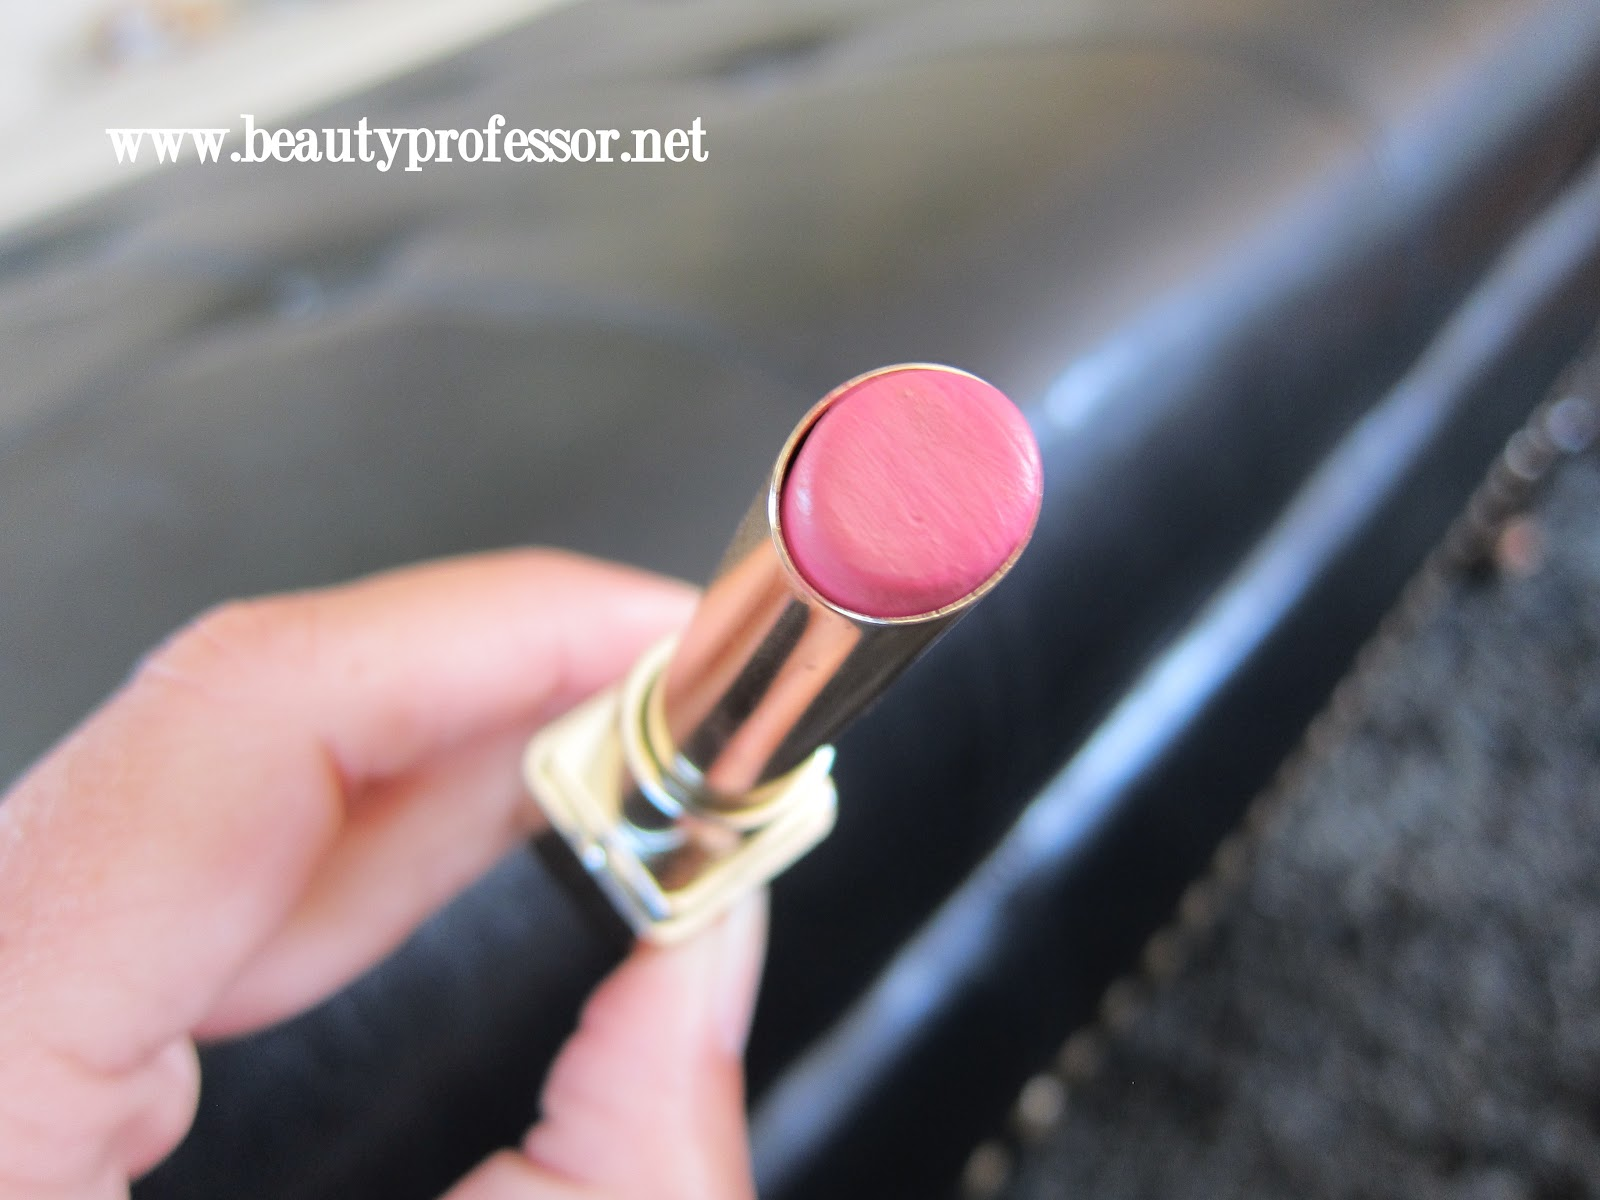 Loreal color caresse by color rich lipstick - Cotton Pink Is A Light Cool Bubblegum Pink With Some Shimmer Excellent Color Payoff With Just One Swipe